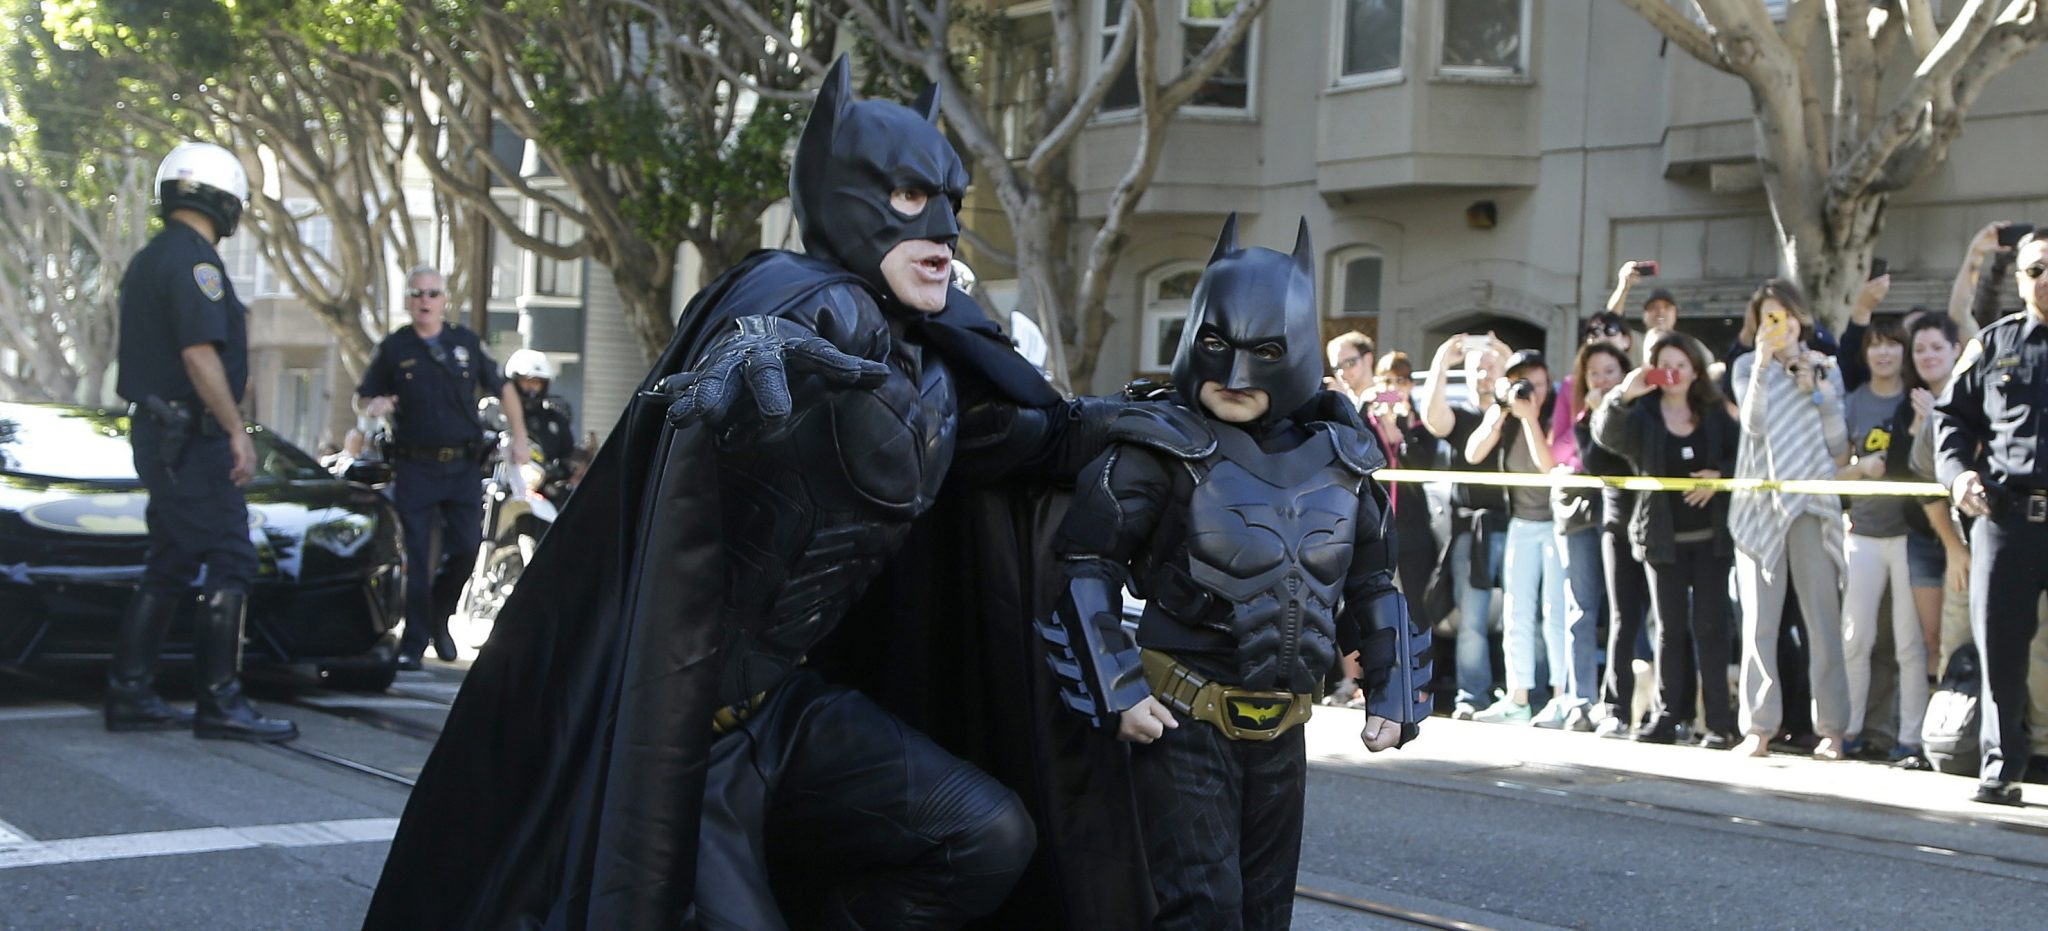 "Miles Scott, dressed as Batkid, right, walks with Batman before saving a damsel in distress in San Francisco, Friday, Nov. 15, 2013.  San Francisco turned into Gotham City on Friday, as city officials helped fulfill Scott's wish to be ""Batkid."" Scott, a leukemia patient from Tulelake in far Northern California, was called into service on Friday morning by San Francisco Police Chief Greg Suhr to help fight crime, The Greater Bay Area Make-A-Wish Foundation says. (AP Photo/Jeff Chiu)"